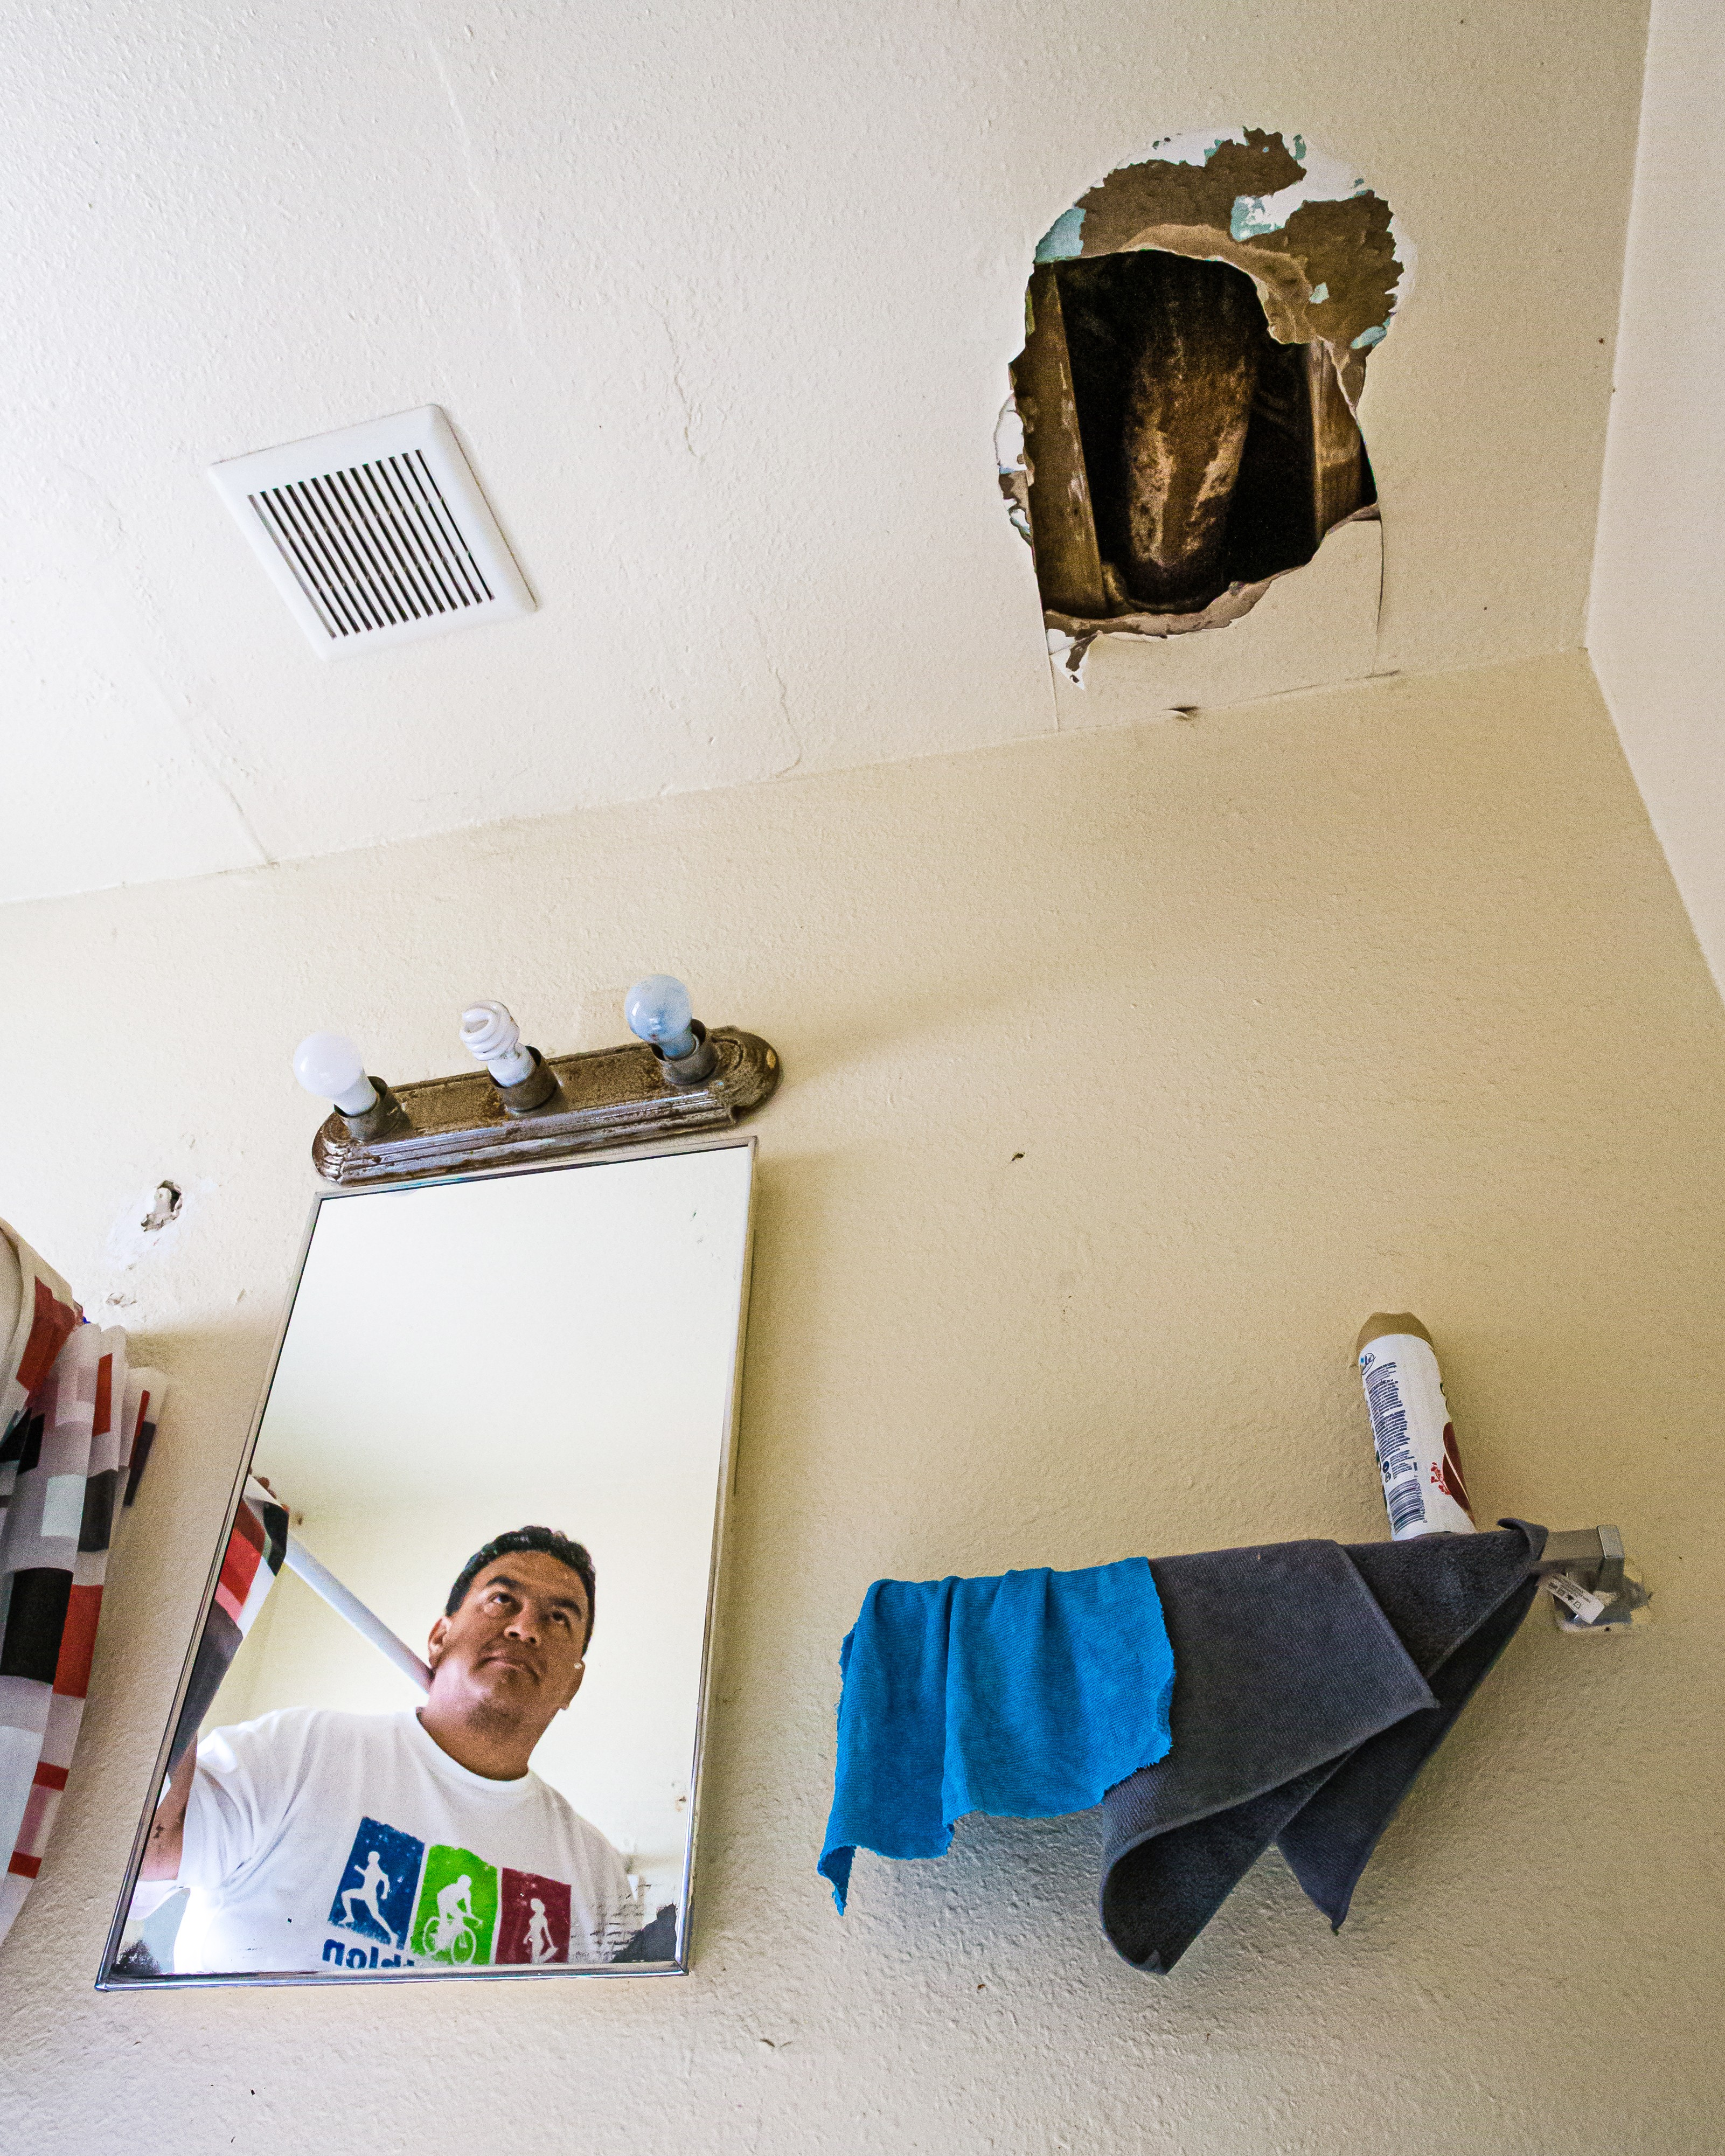 Unlivable: Tenants Loudly Demand Habitable Living In Their